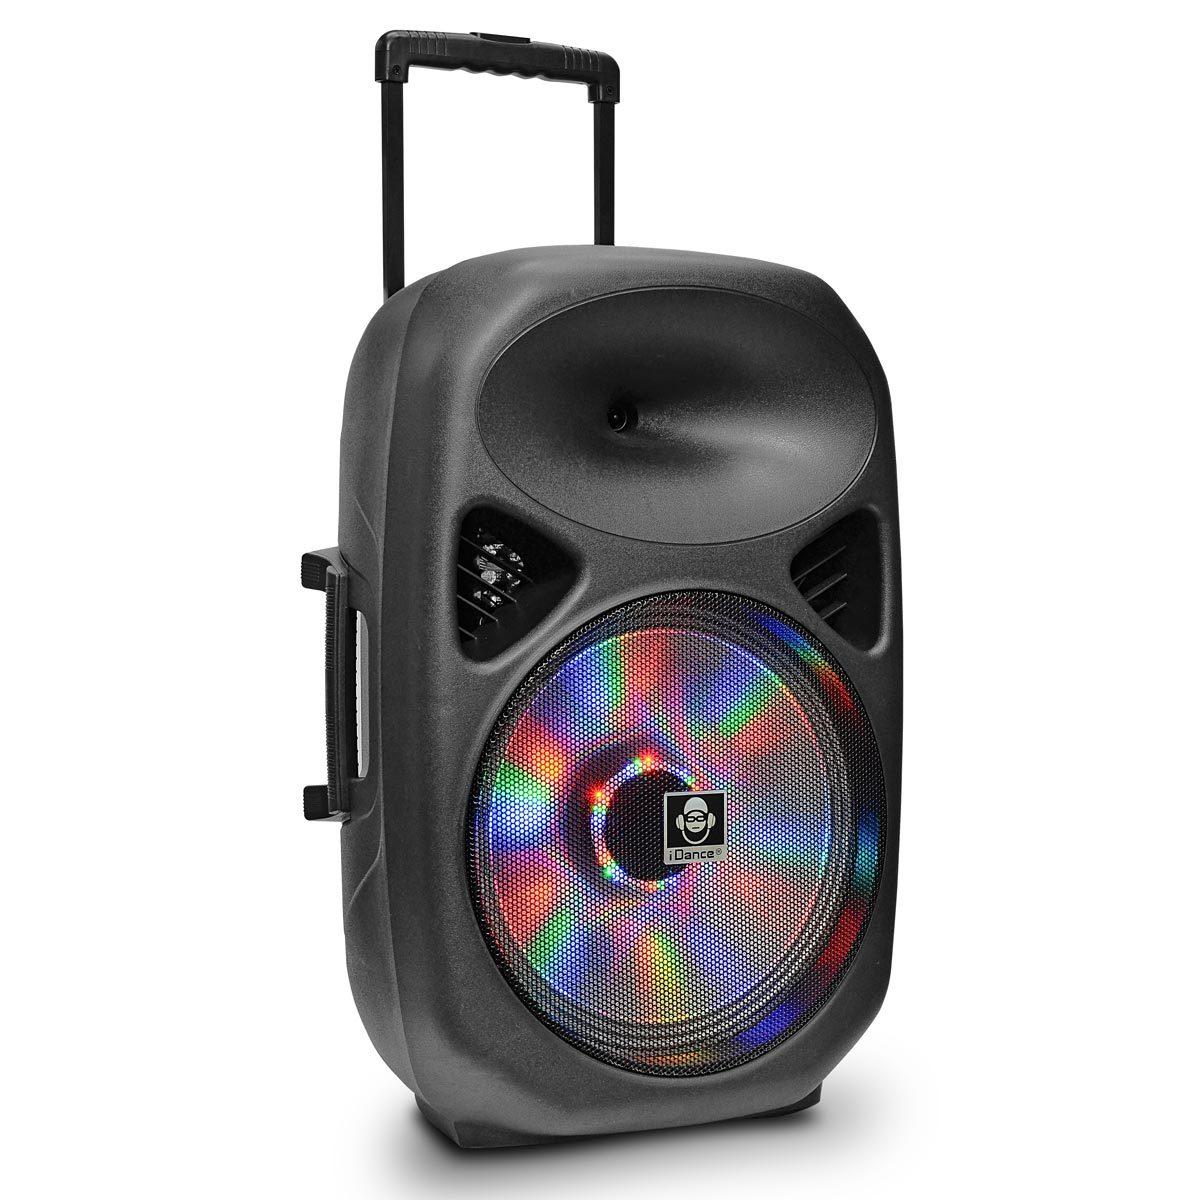 Trolley Lautsprecher Idance Idance Groove 540 1000w Portable Bluetooth Speaker Costco Uk